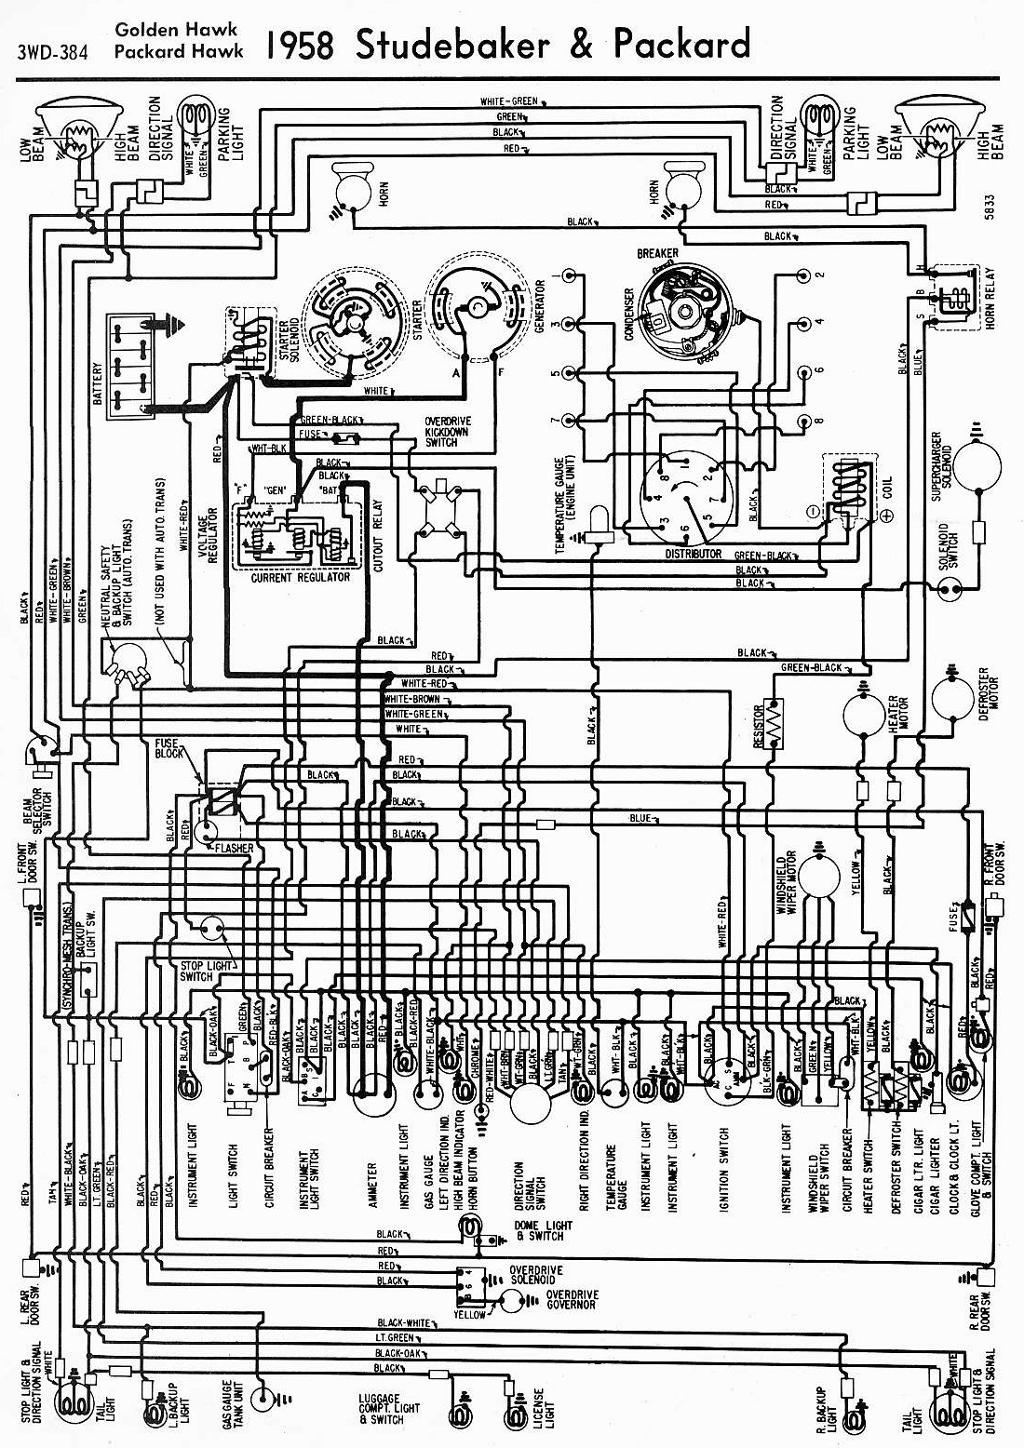 Packard car manuals wiring diagrams PDF amp fault codes